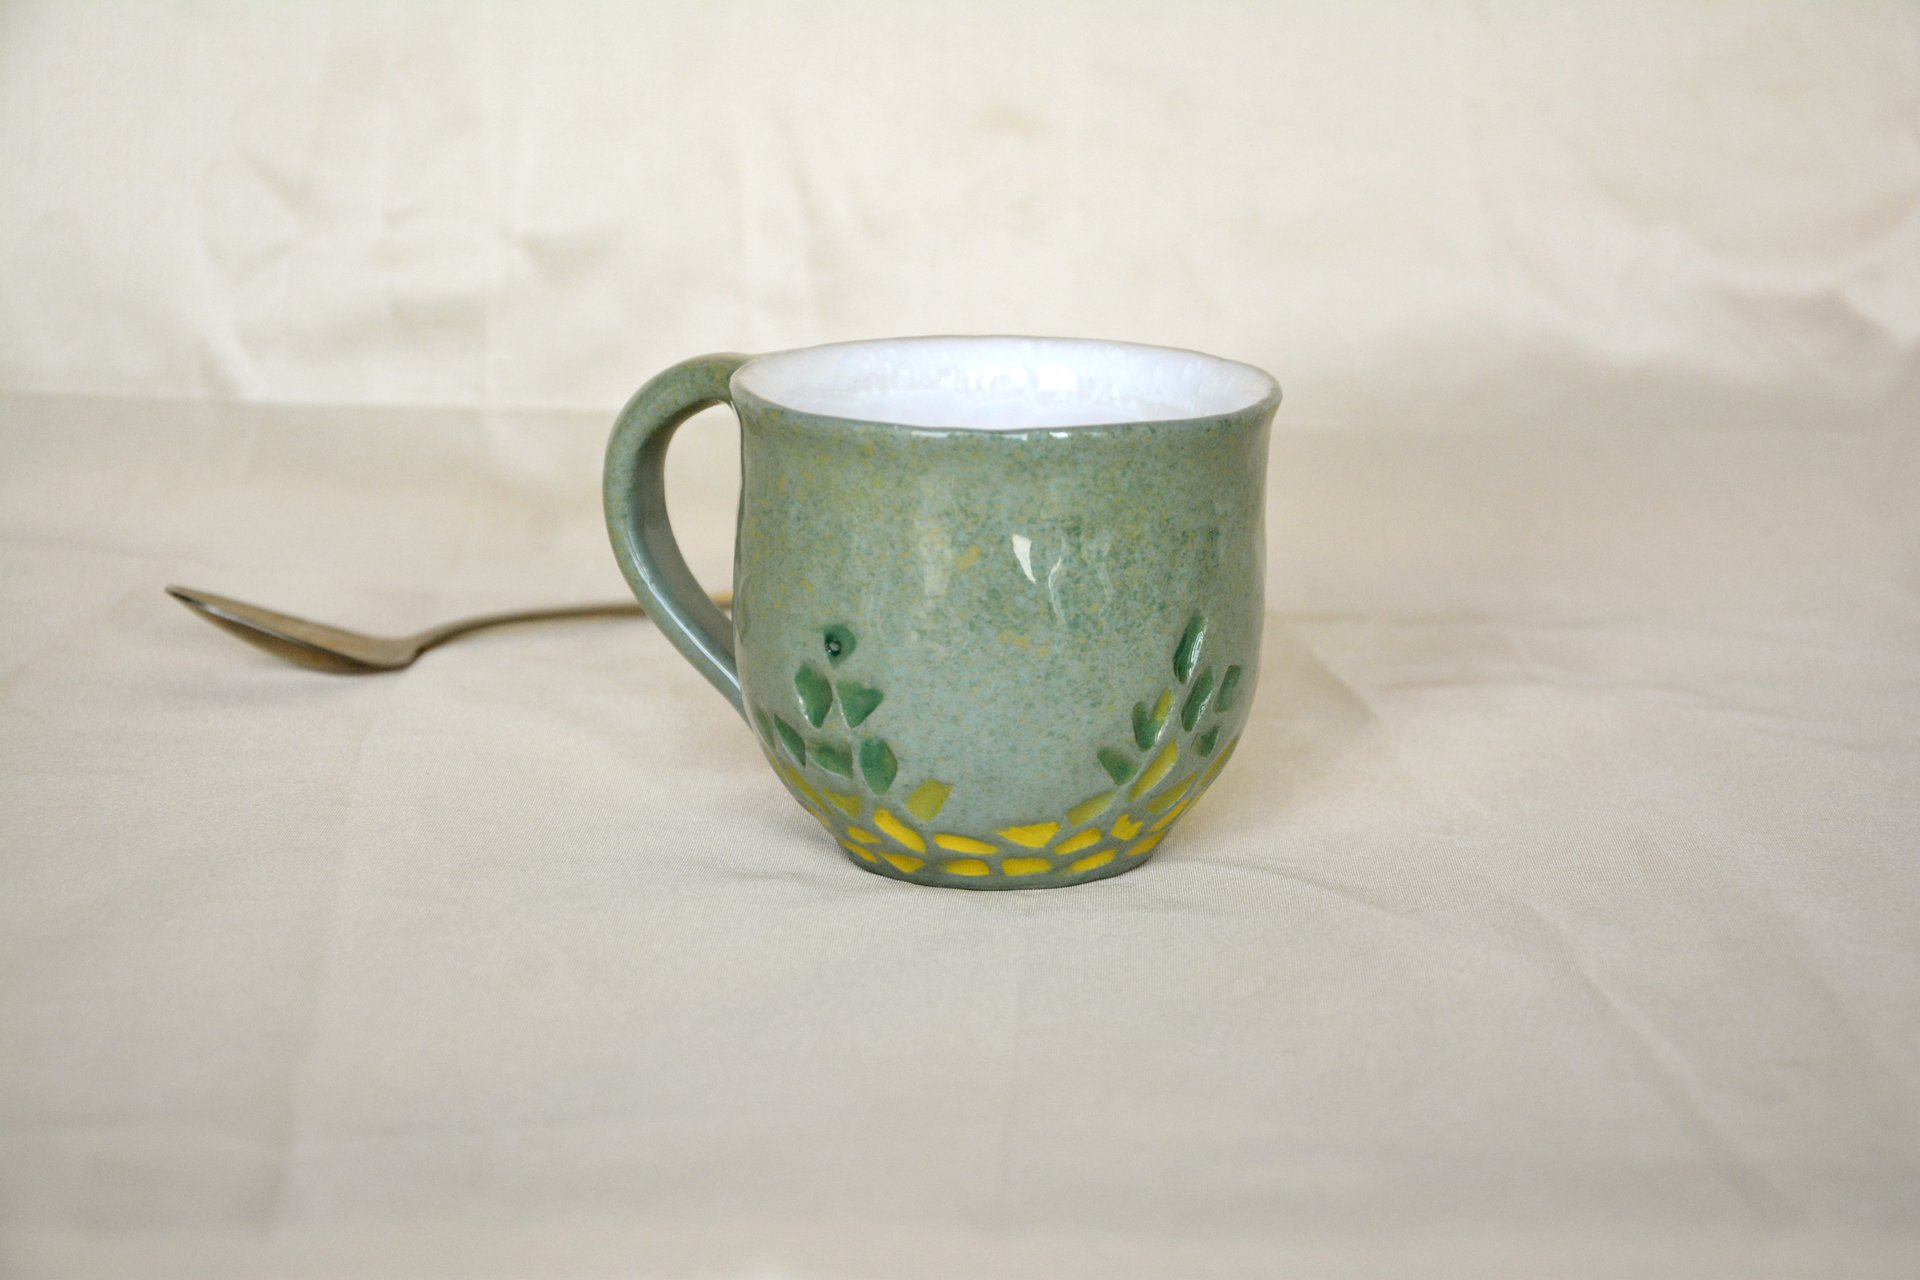 Gray cup for tea or coffee, height - 7 cm, volume - 220 ml, photo 8 of 8.